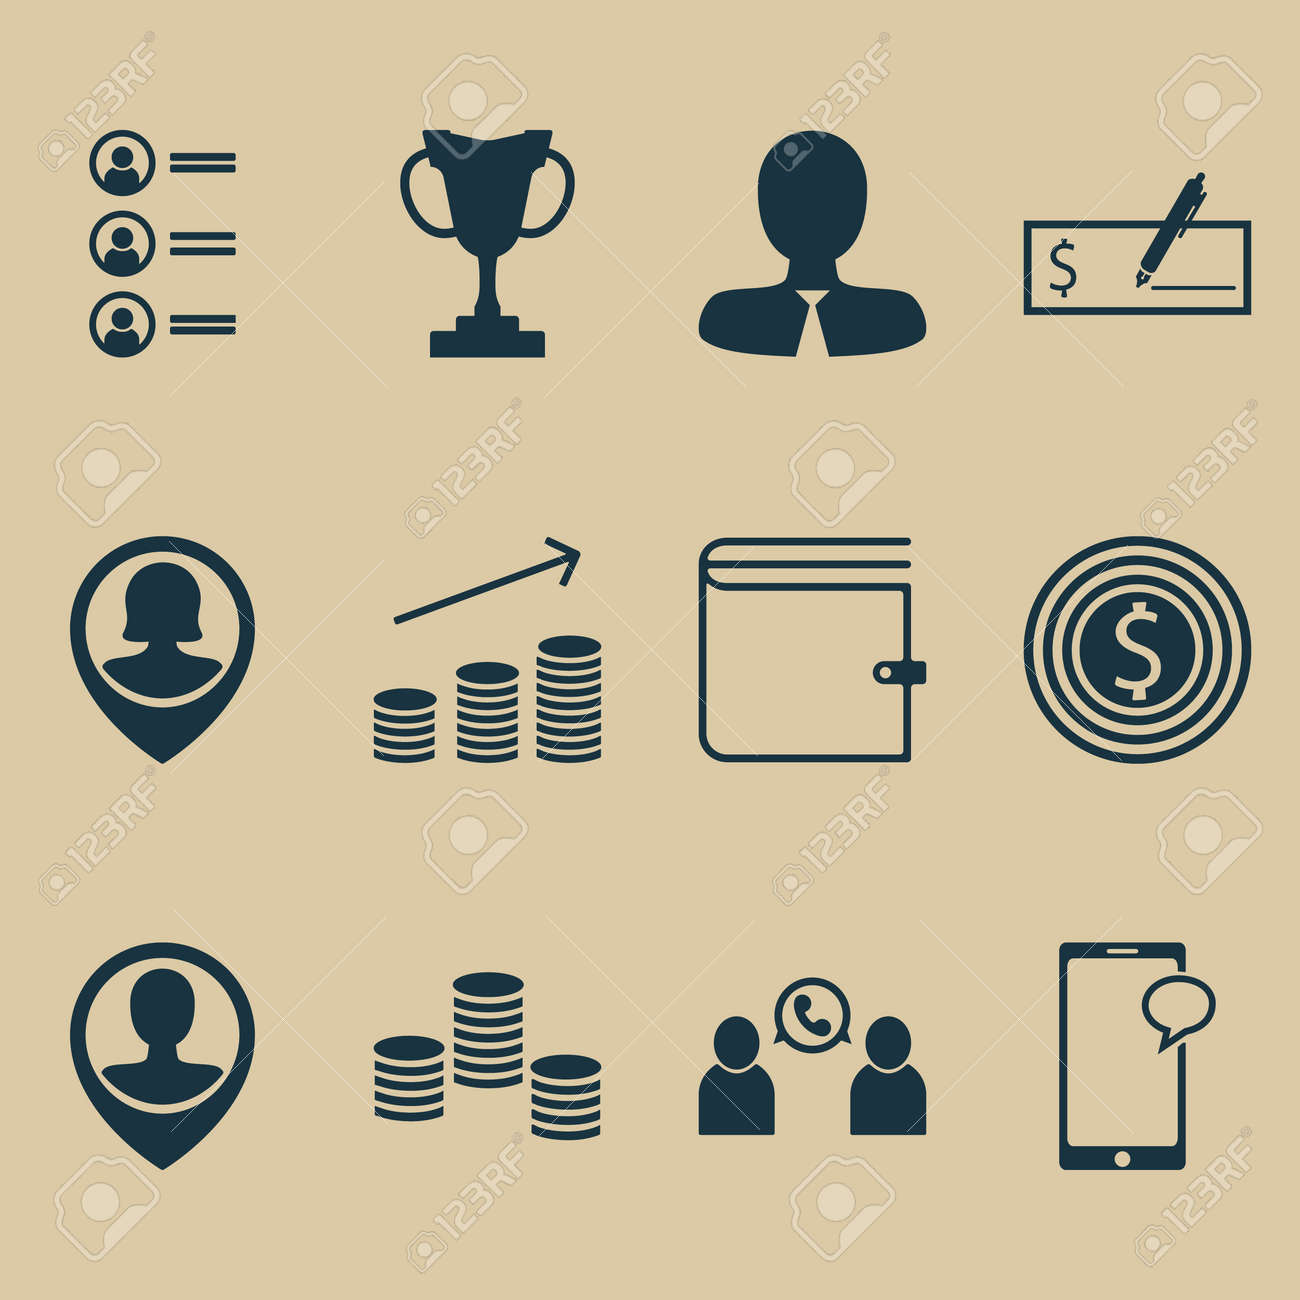 Set Of 12 Human Resources Icons. Can Be Used For Web, Mobile, UI And ...